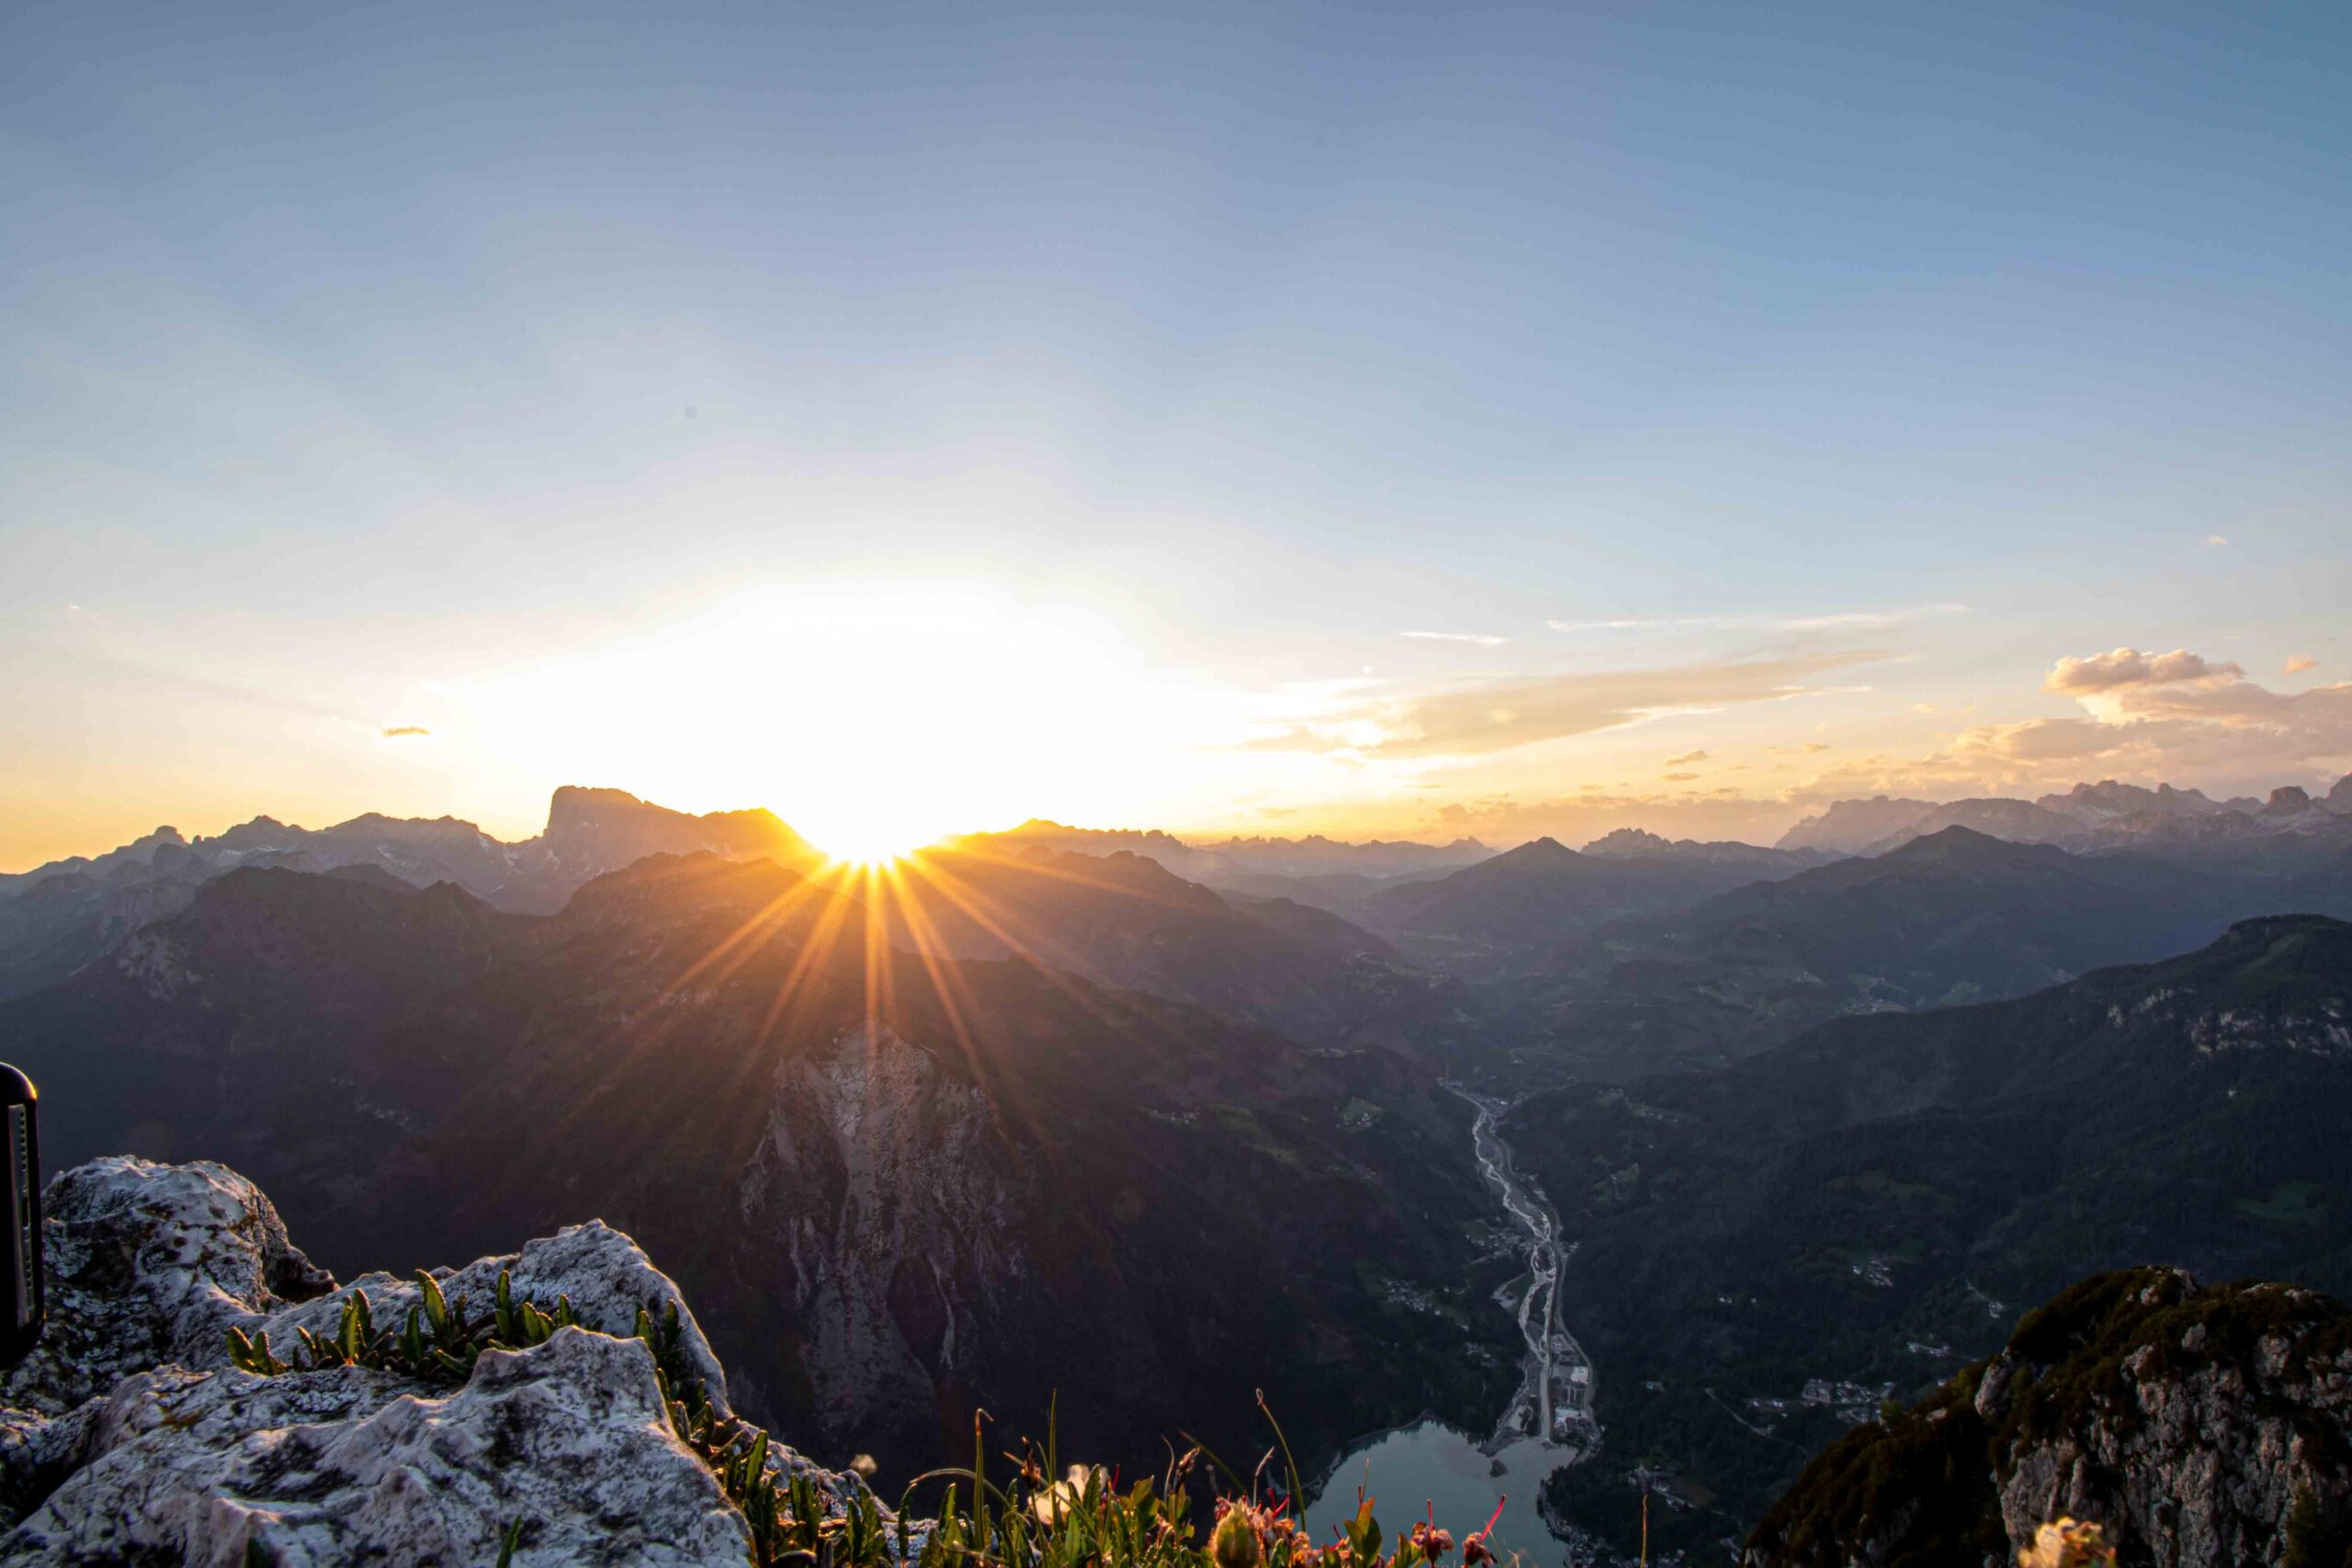 https://i2.wp.com/happytracks.ch/wp-content/uploads/2020/11/Sunset-over-the-Rifugio-Tissi-scaled.jpg?fit=2560%2C1707&ssl=1